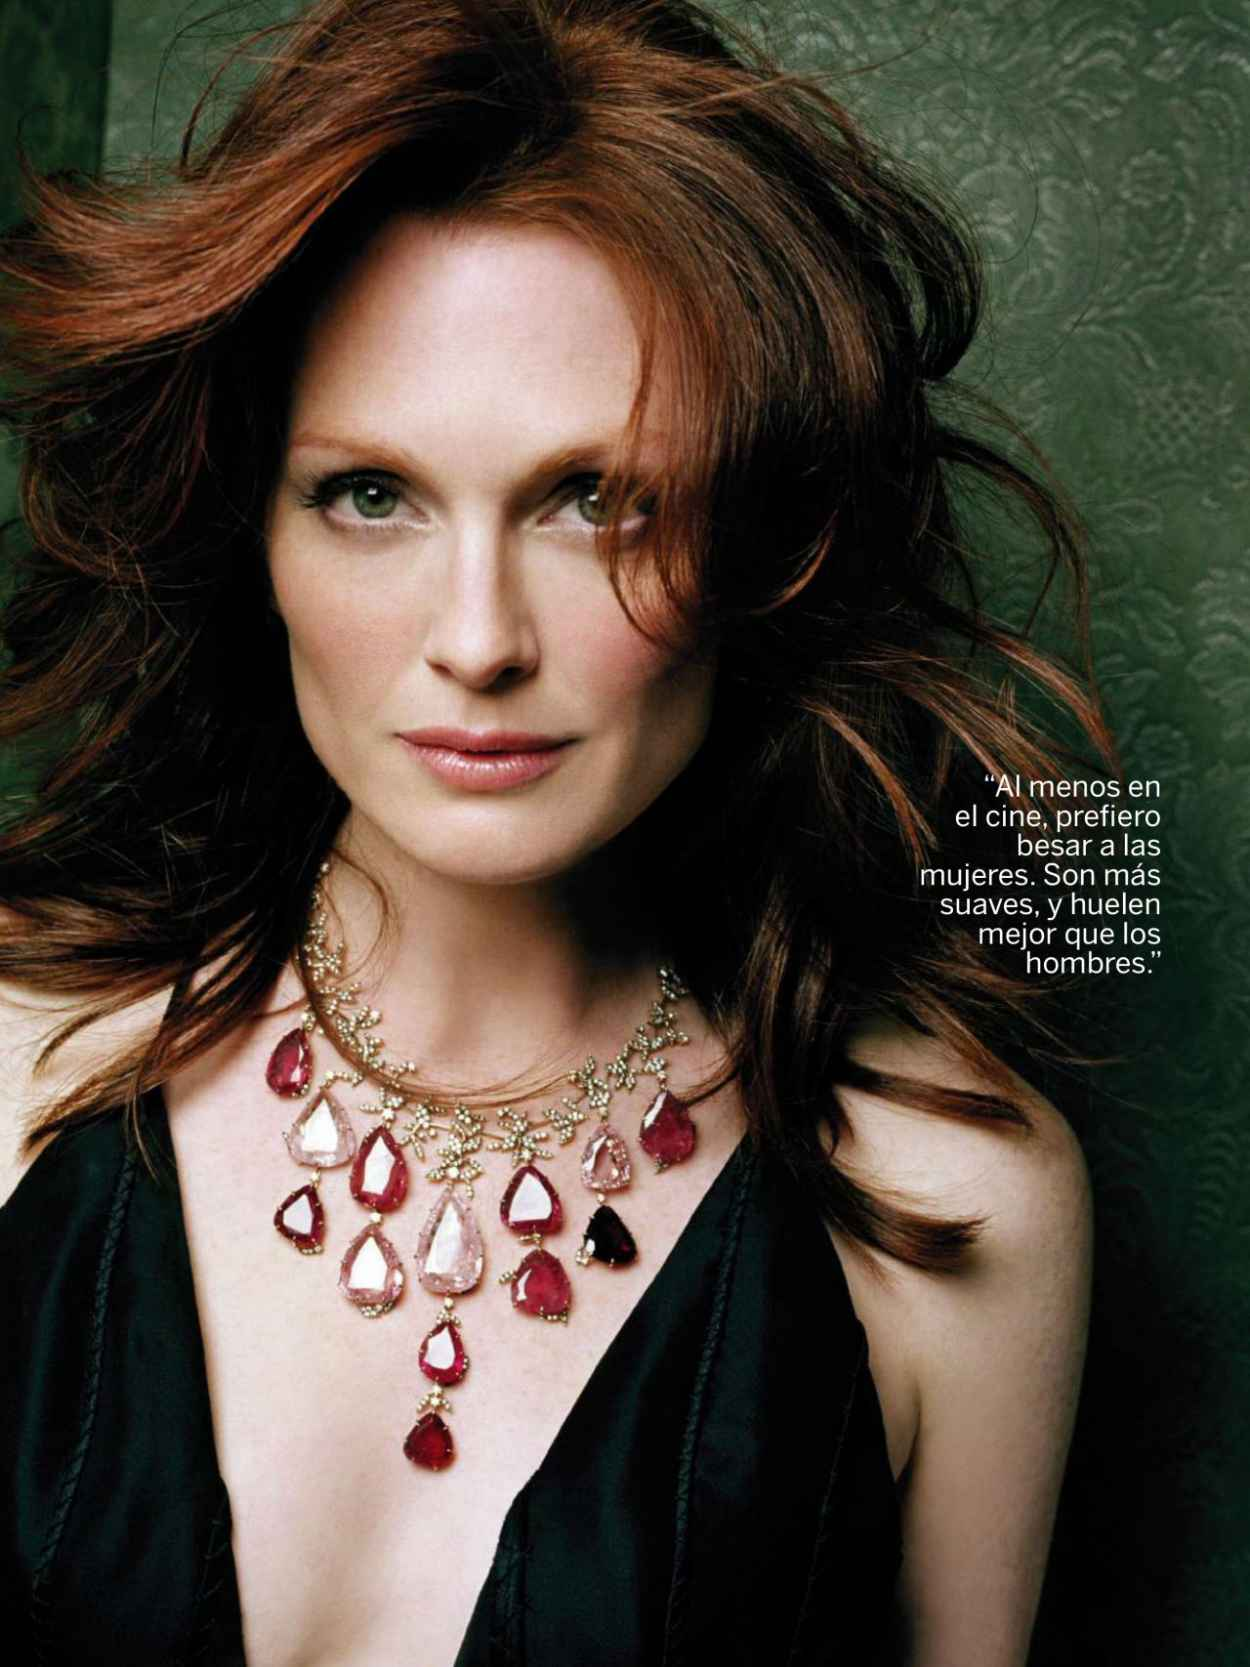 Julianne Moore - Fotogramas Magazine March 2015 Issue-1